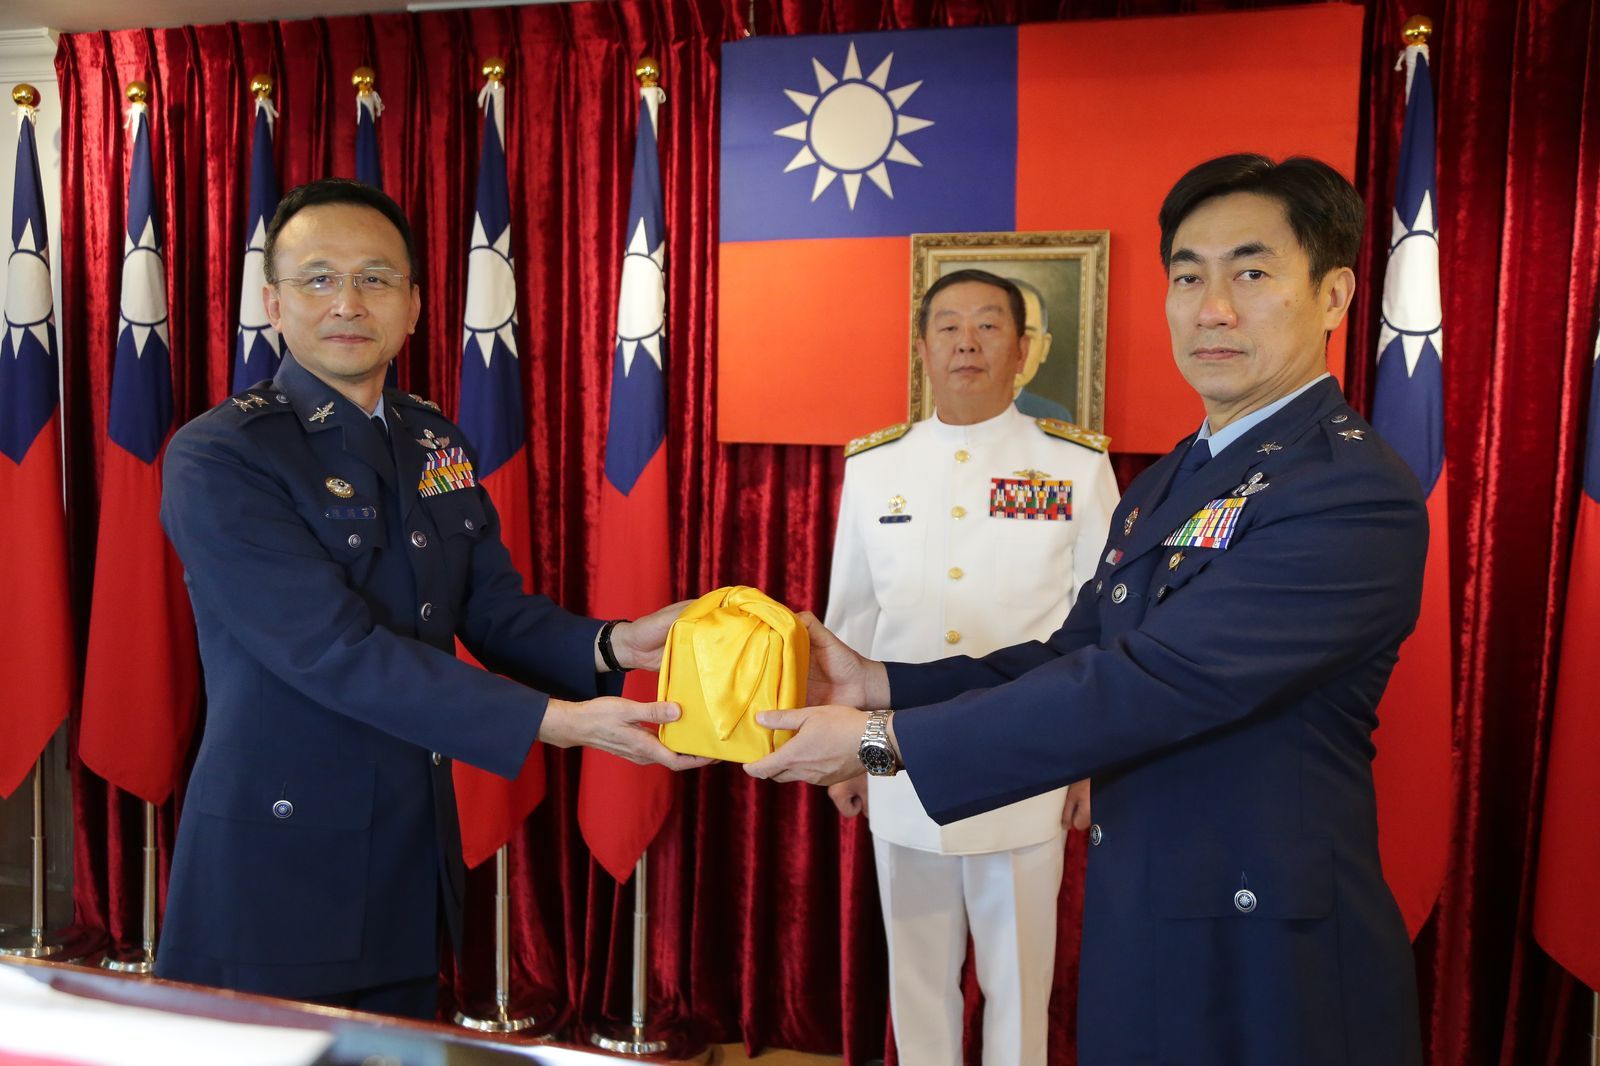 The CGS presided inauguration ceremony of DCGS/INTEL